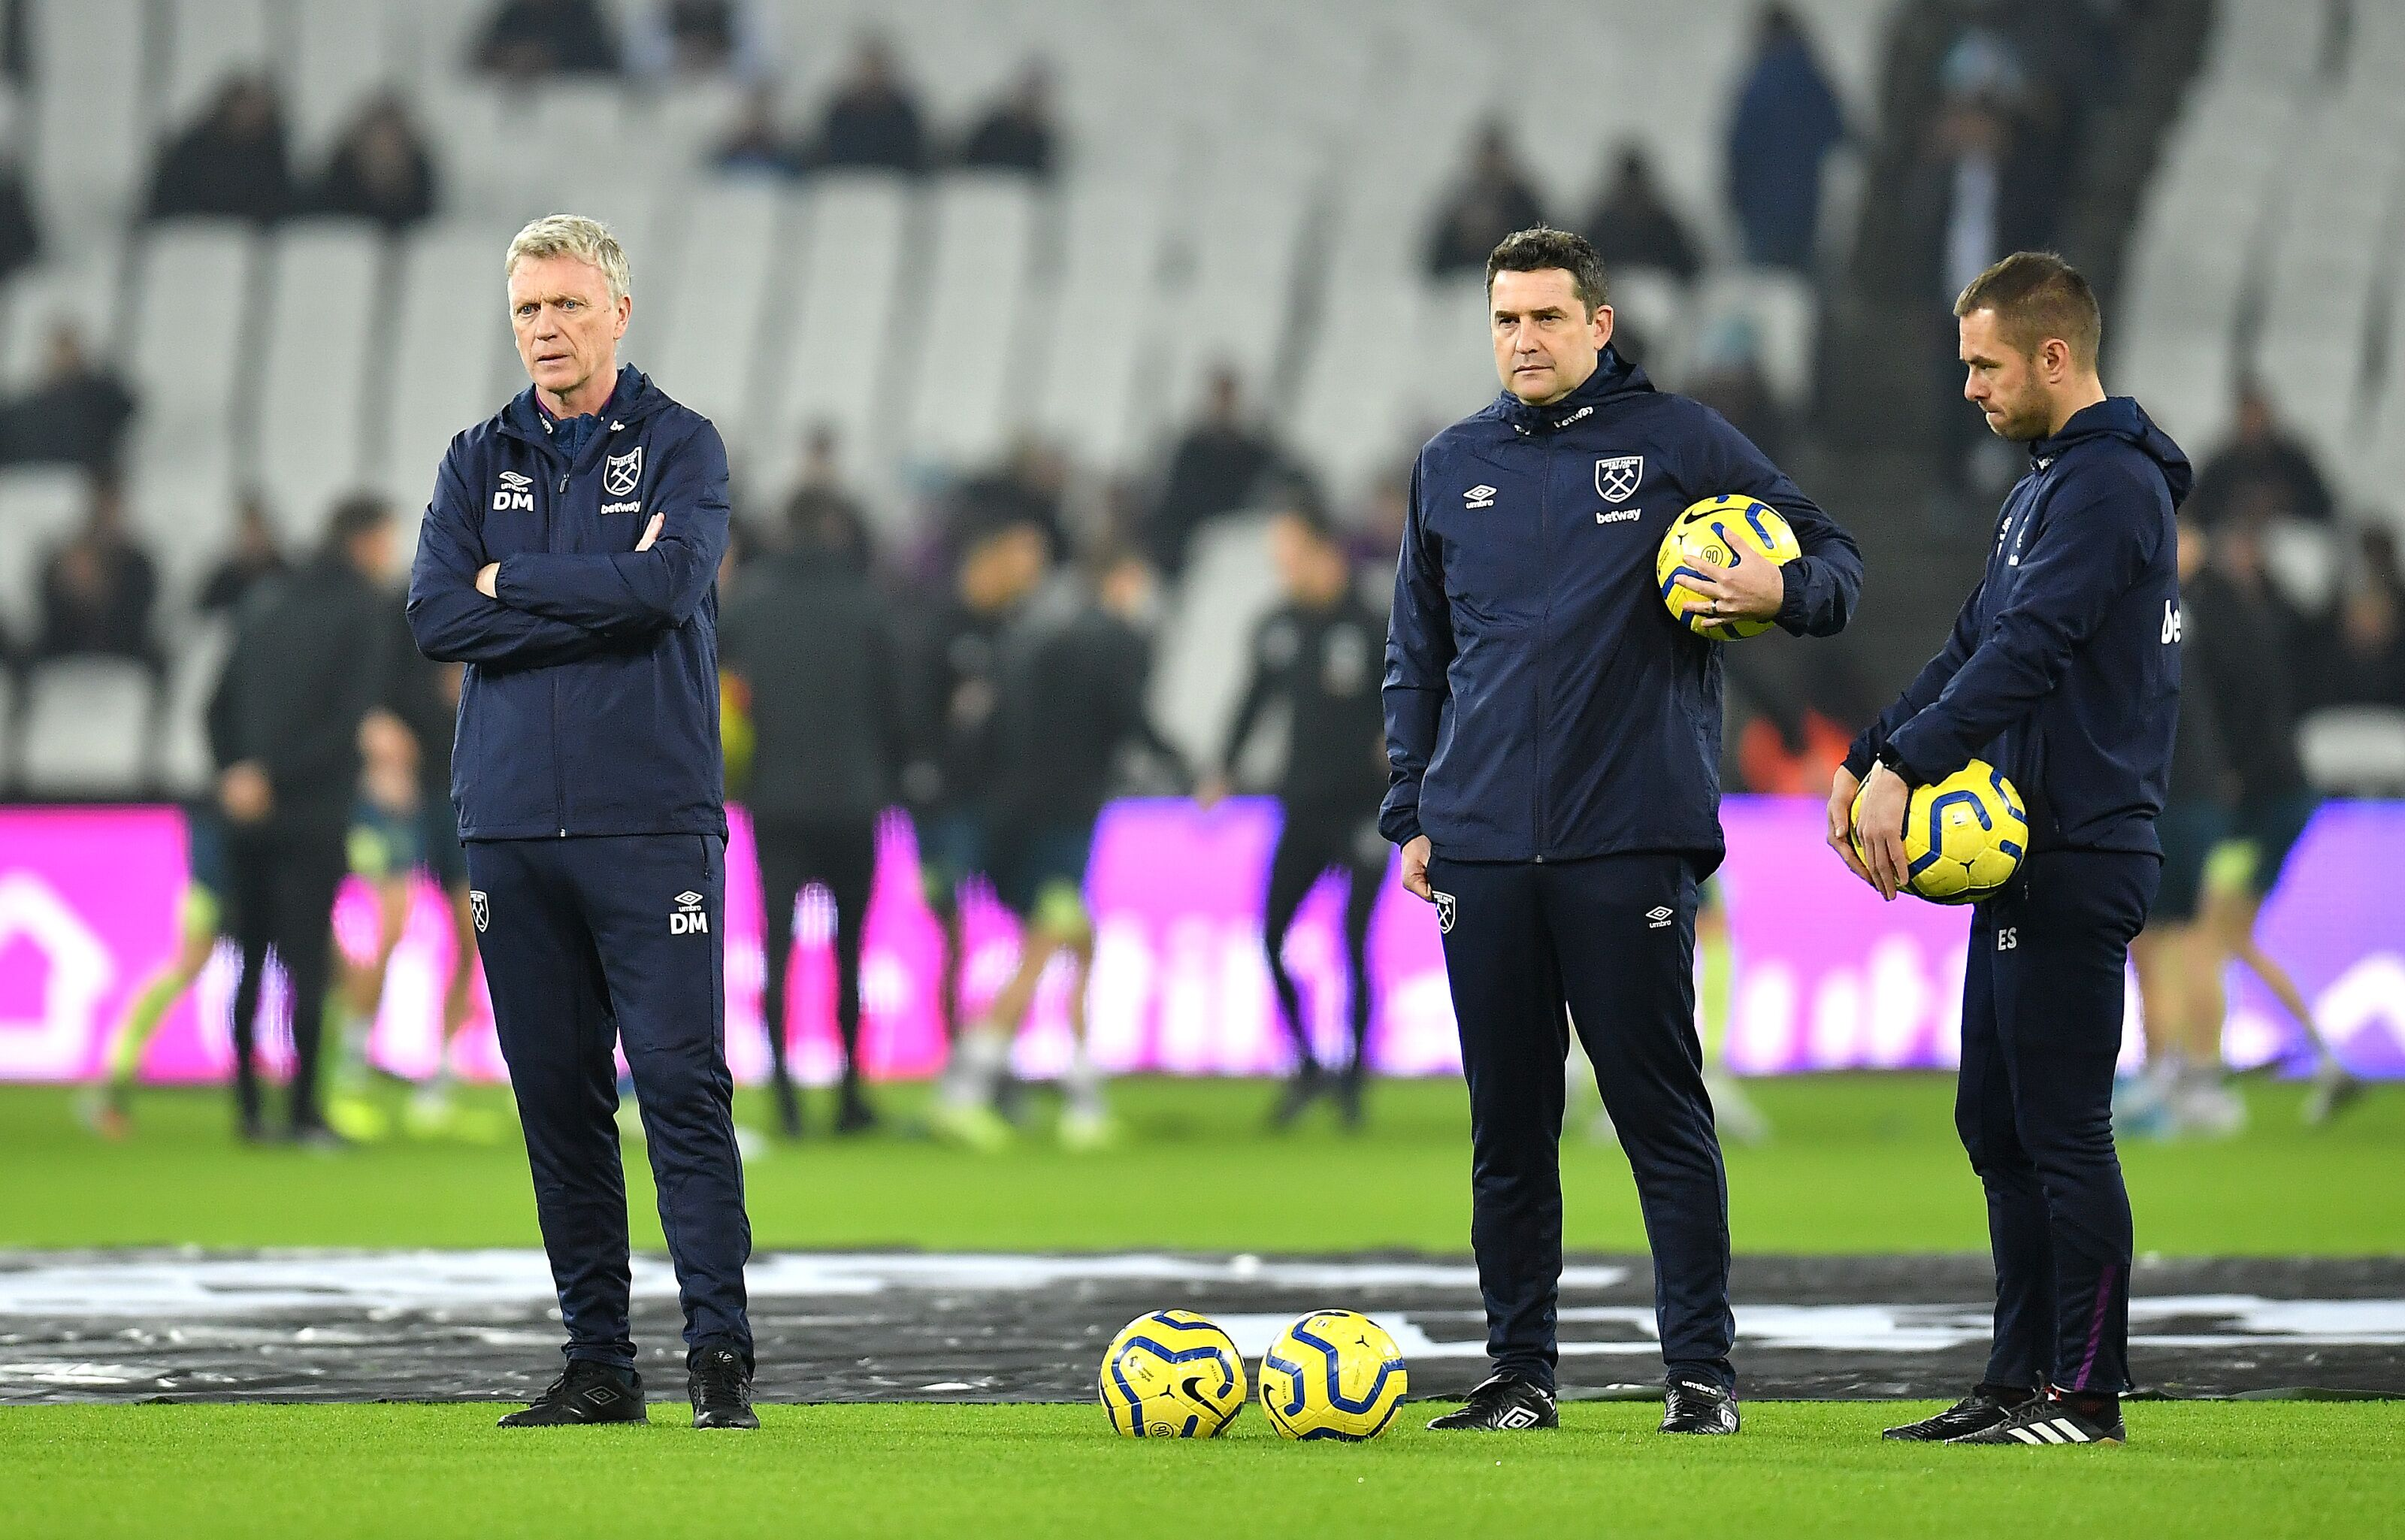 West Ham: Who will be the first purchase under David Moyes?